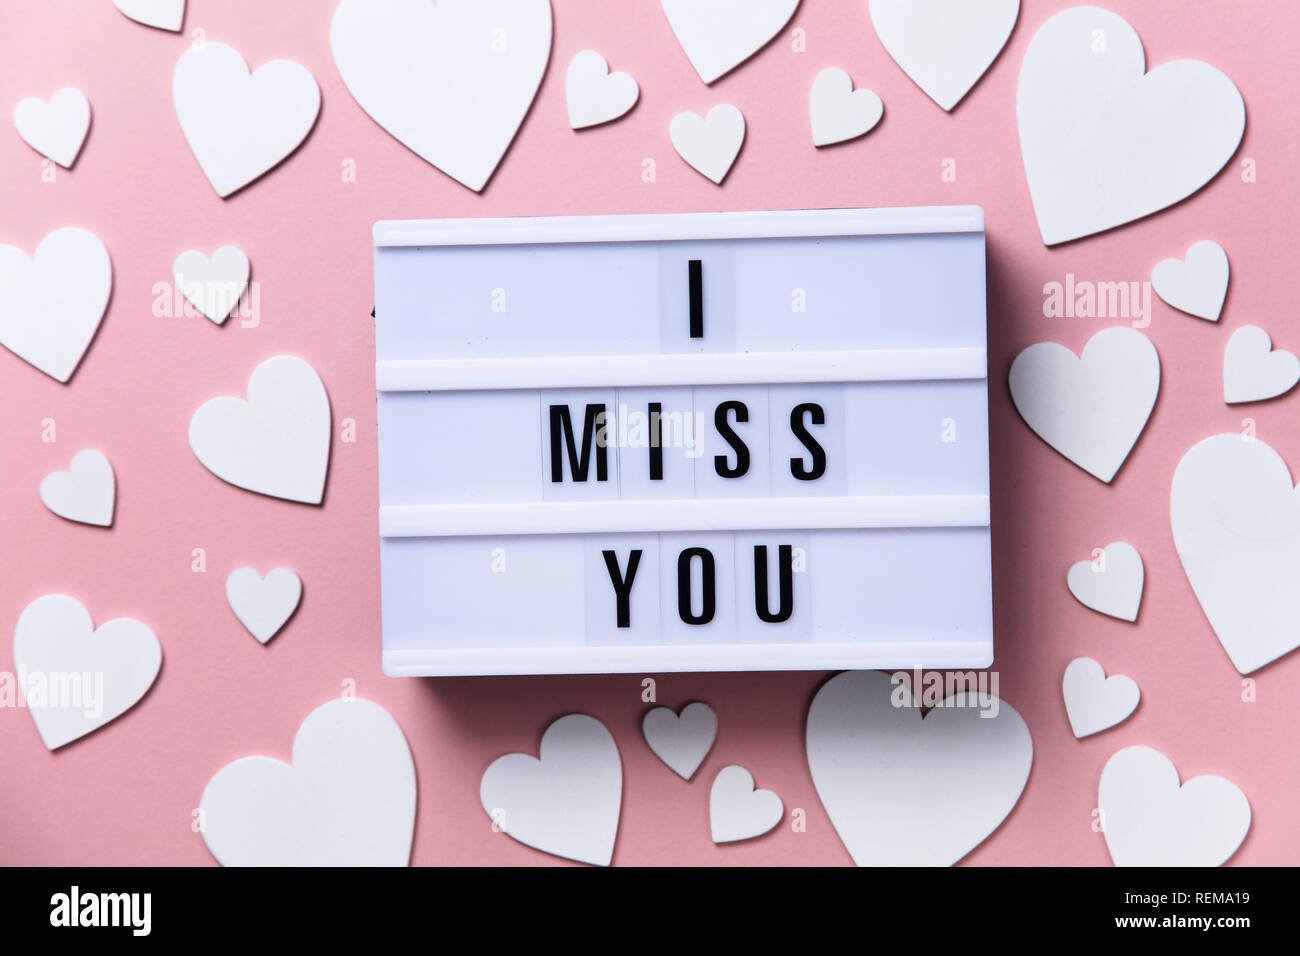 Miss you heart